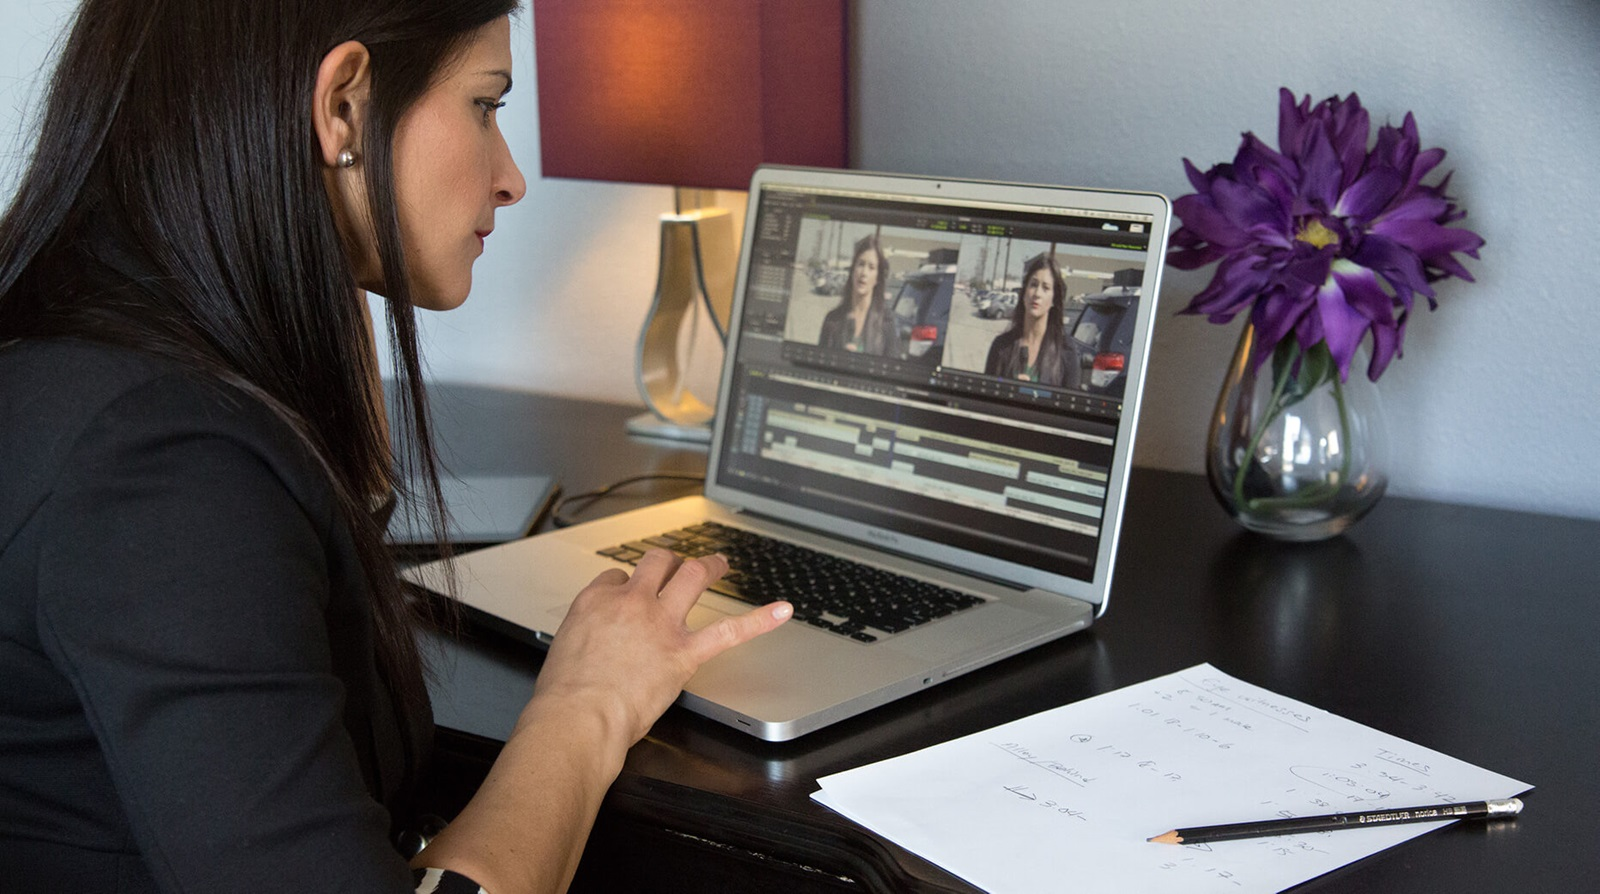 broadcast journalist edits video footage remotely